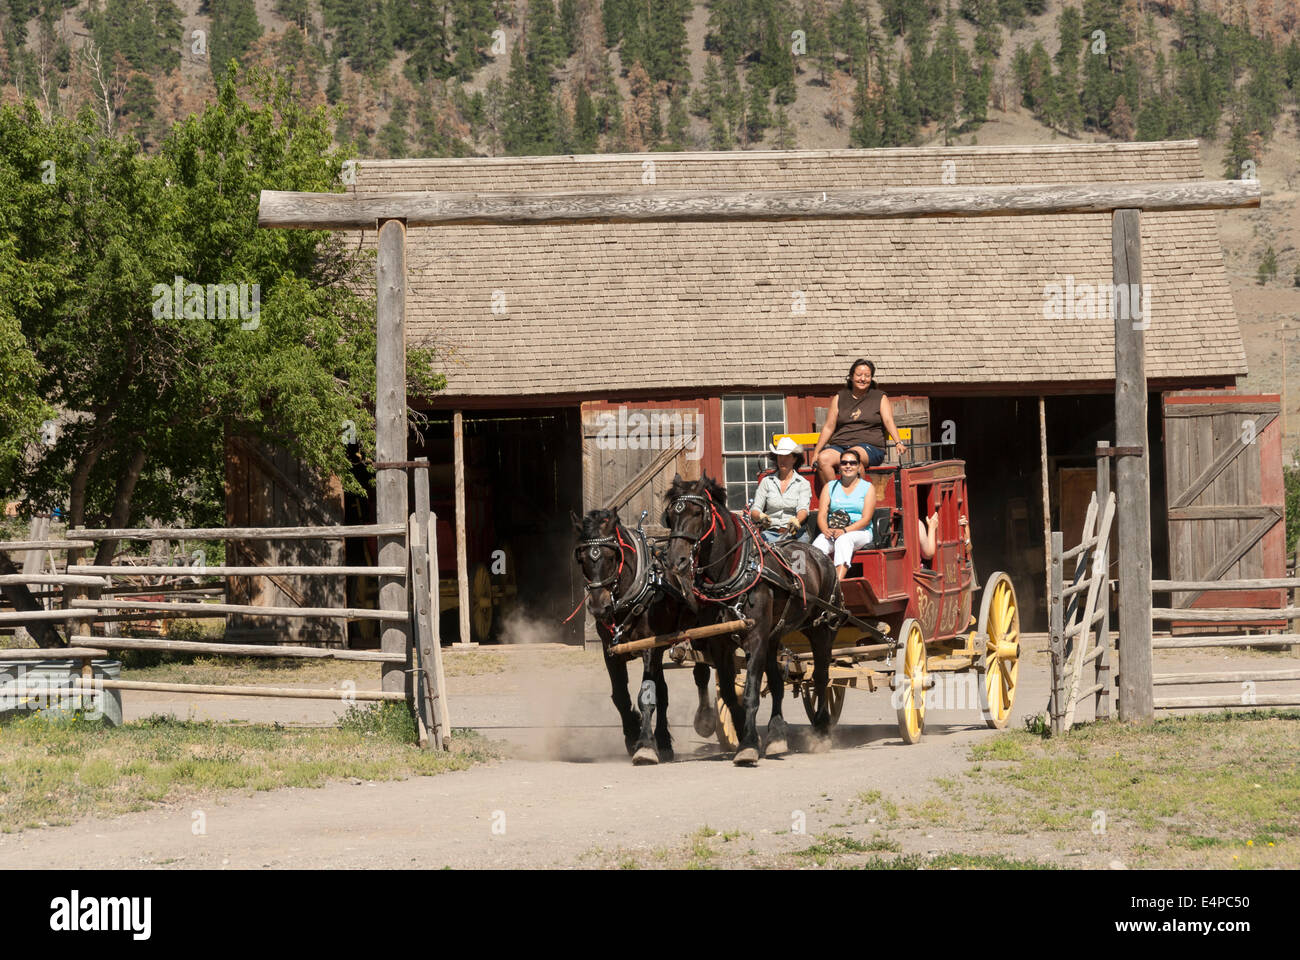 Elk203-3099 Canada, British Columbia, Historic Hat Creek Ranch, stage coach - Stock Image